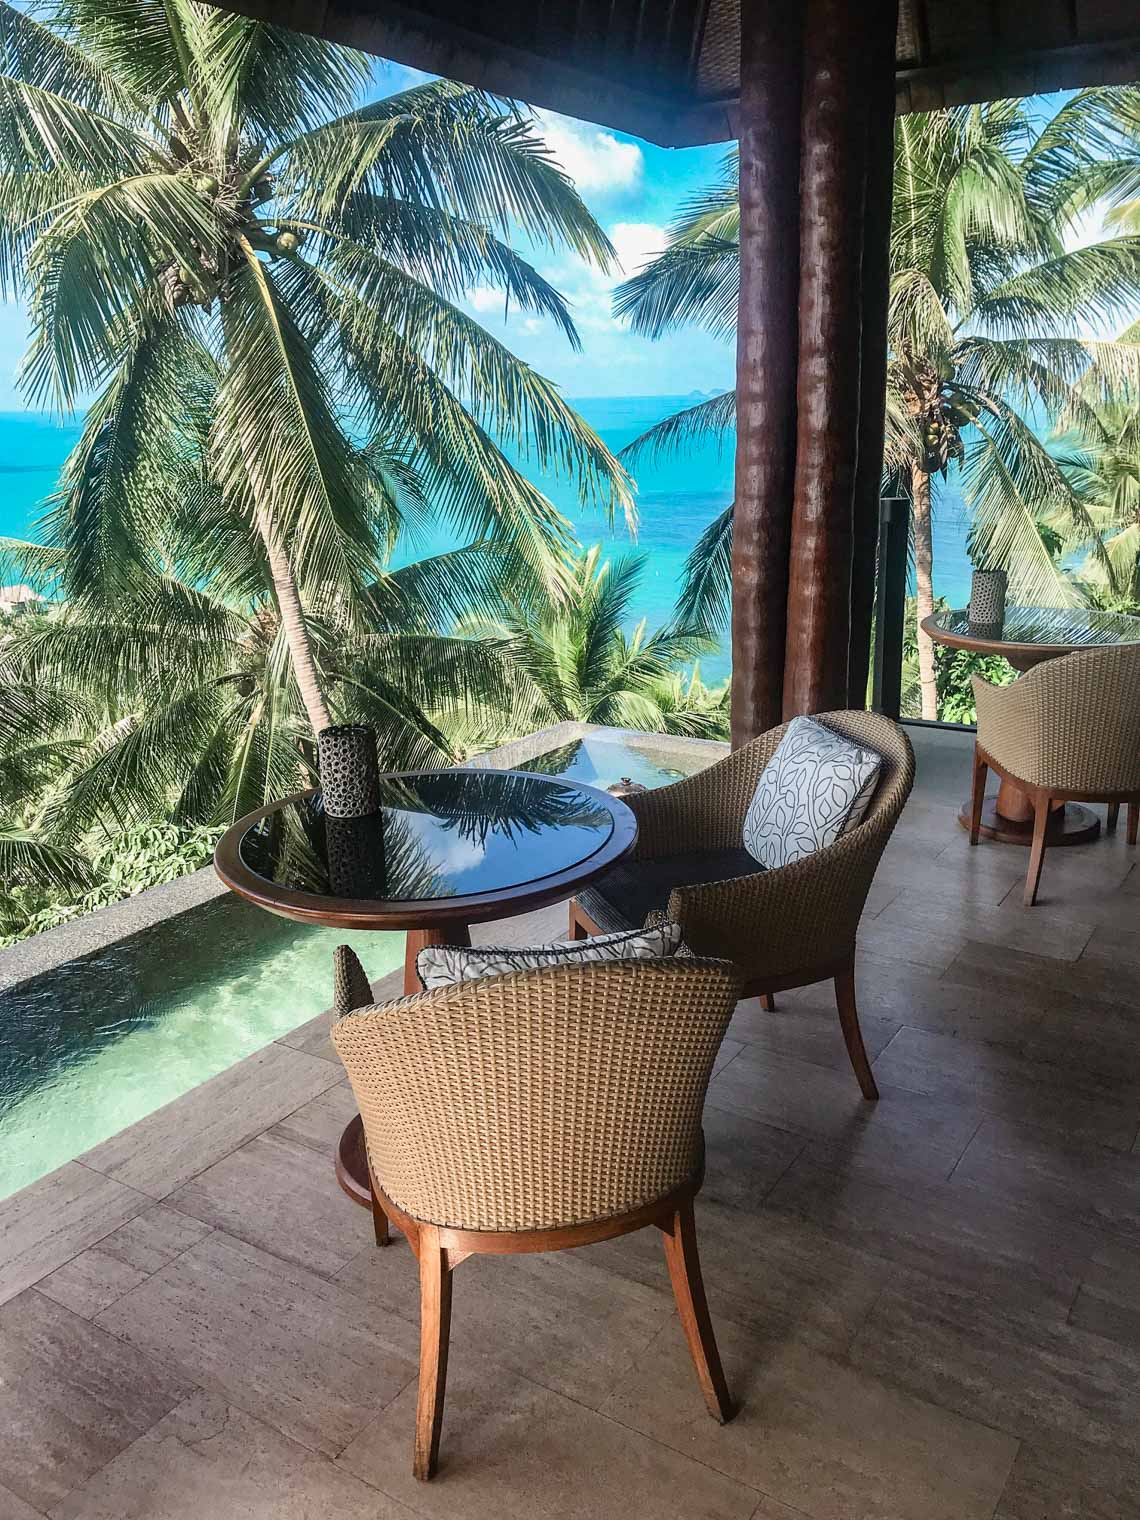 View from the Four Seasons hotel at Koh Samui